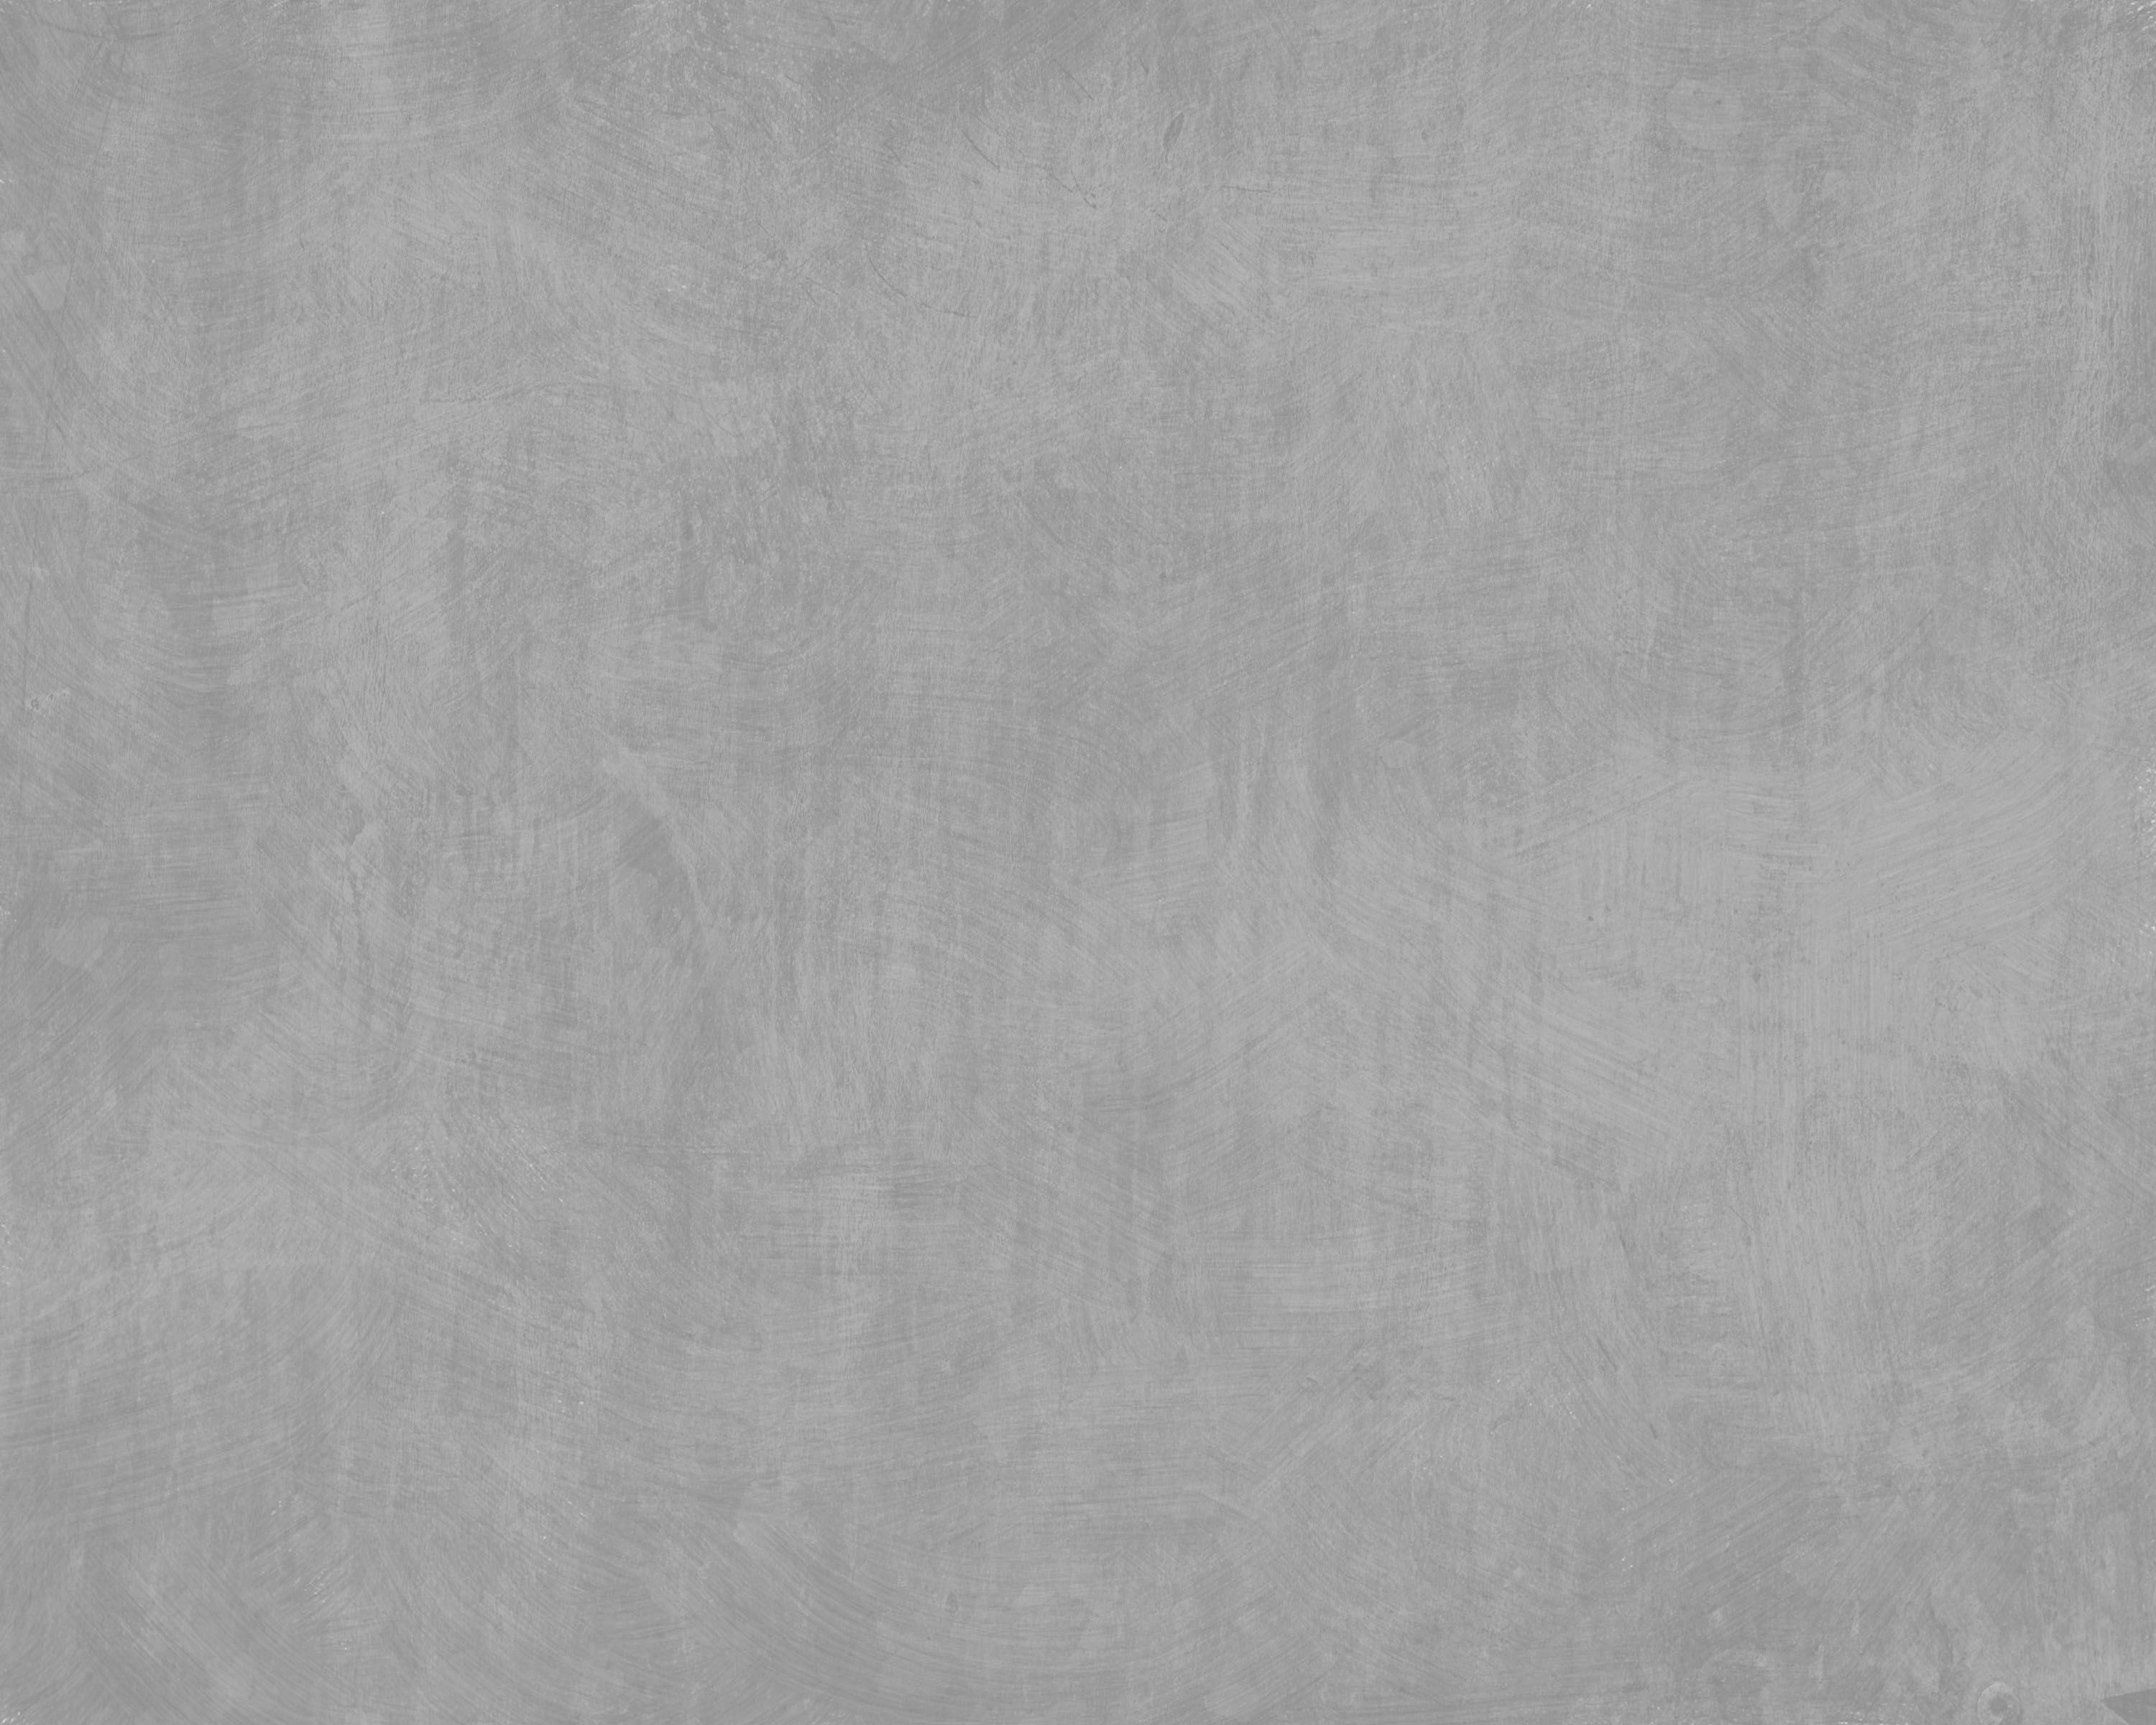 Grey Paint Texture Bing Images Texture Details